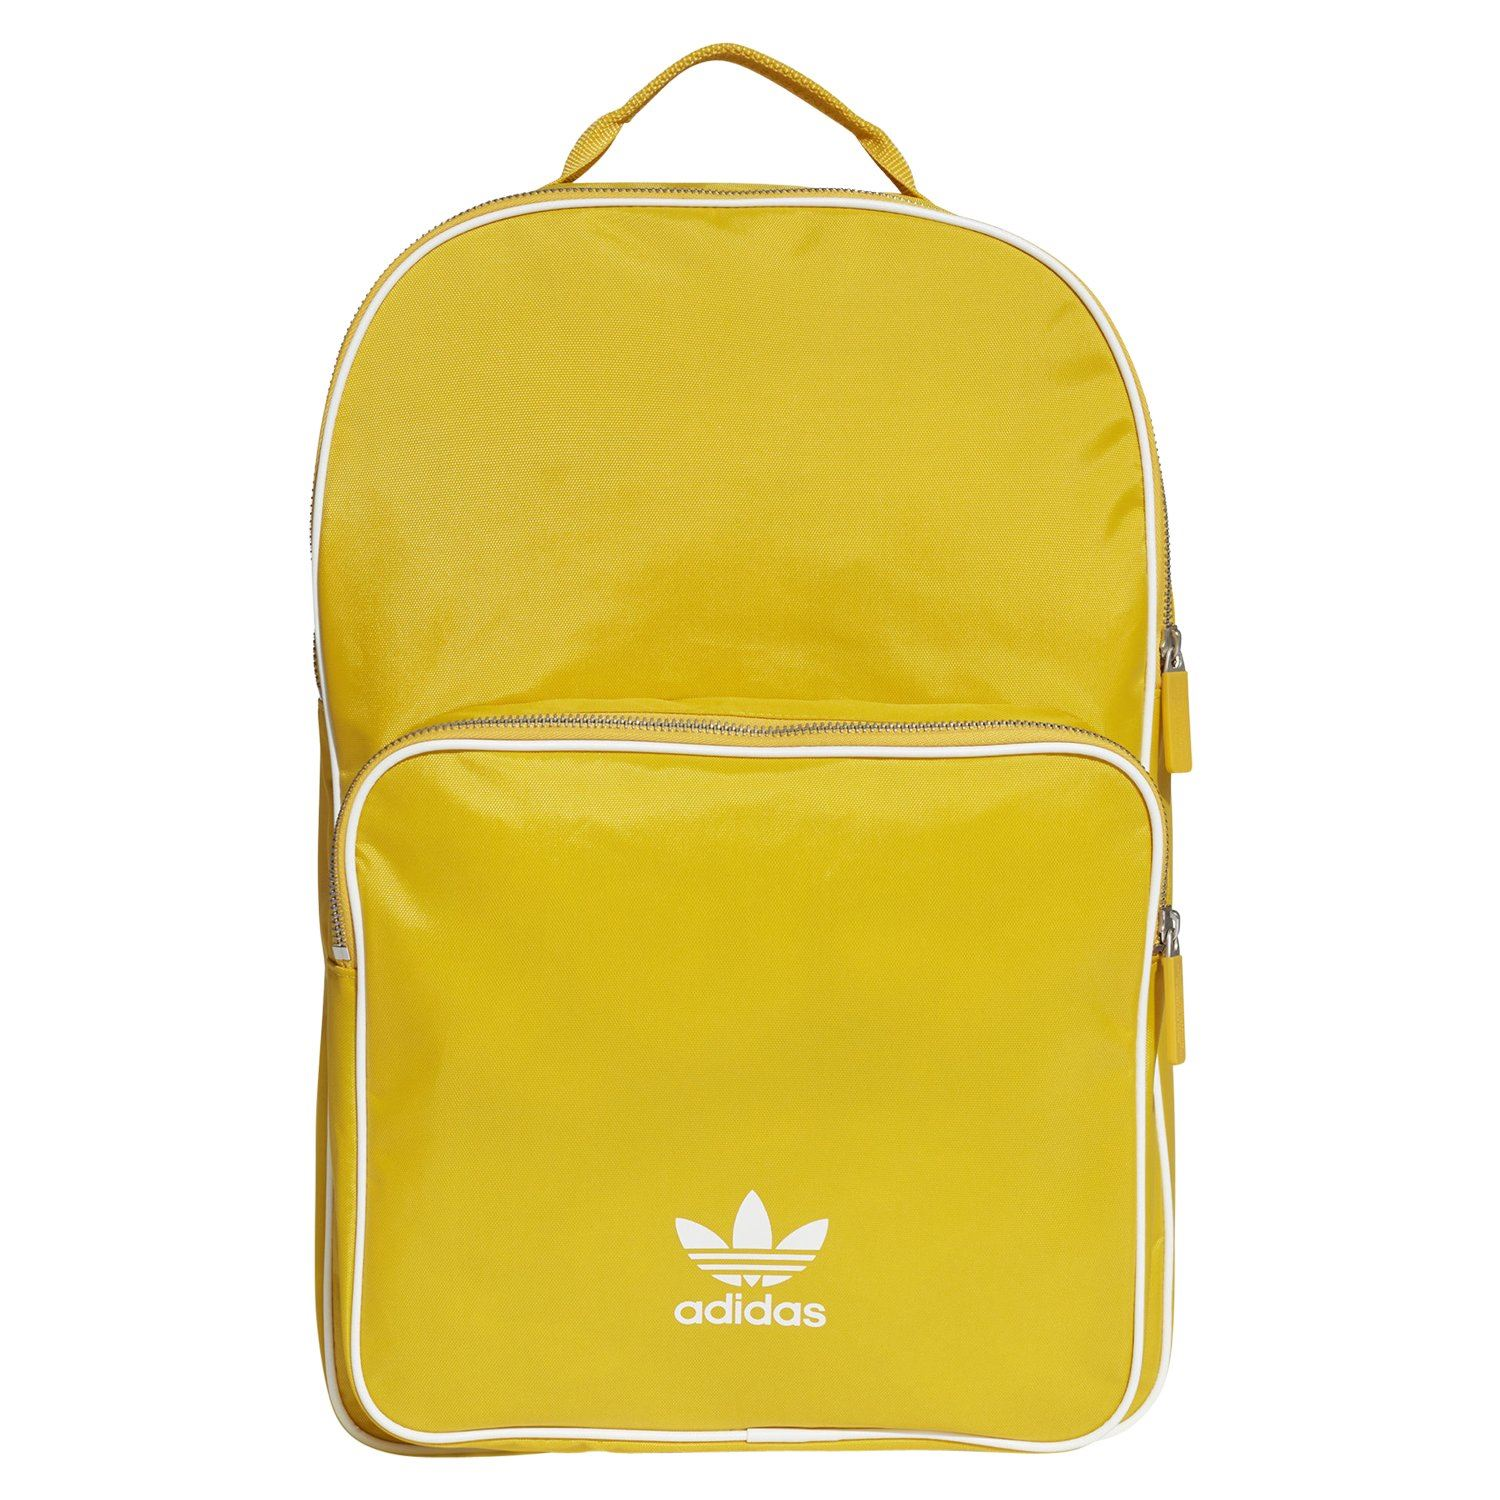 Mochila Amarillo Clásico Adidas Originals Adicolor University qj4cARLS35